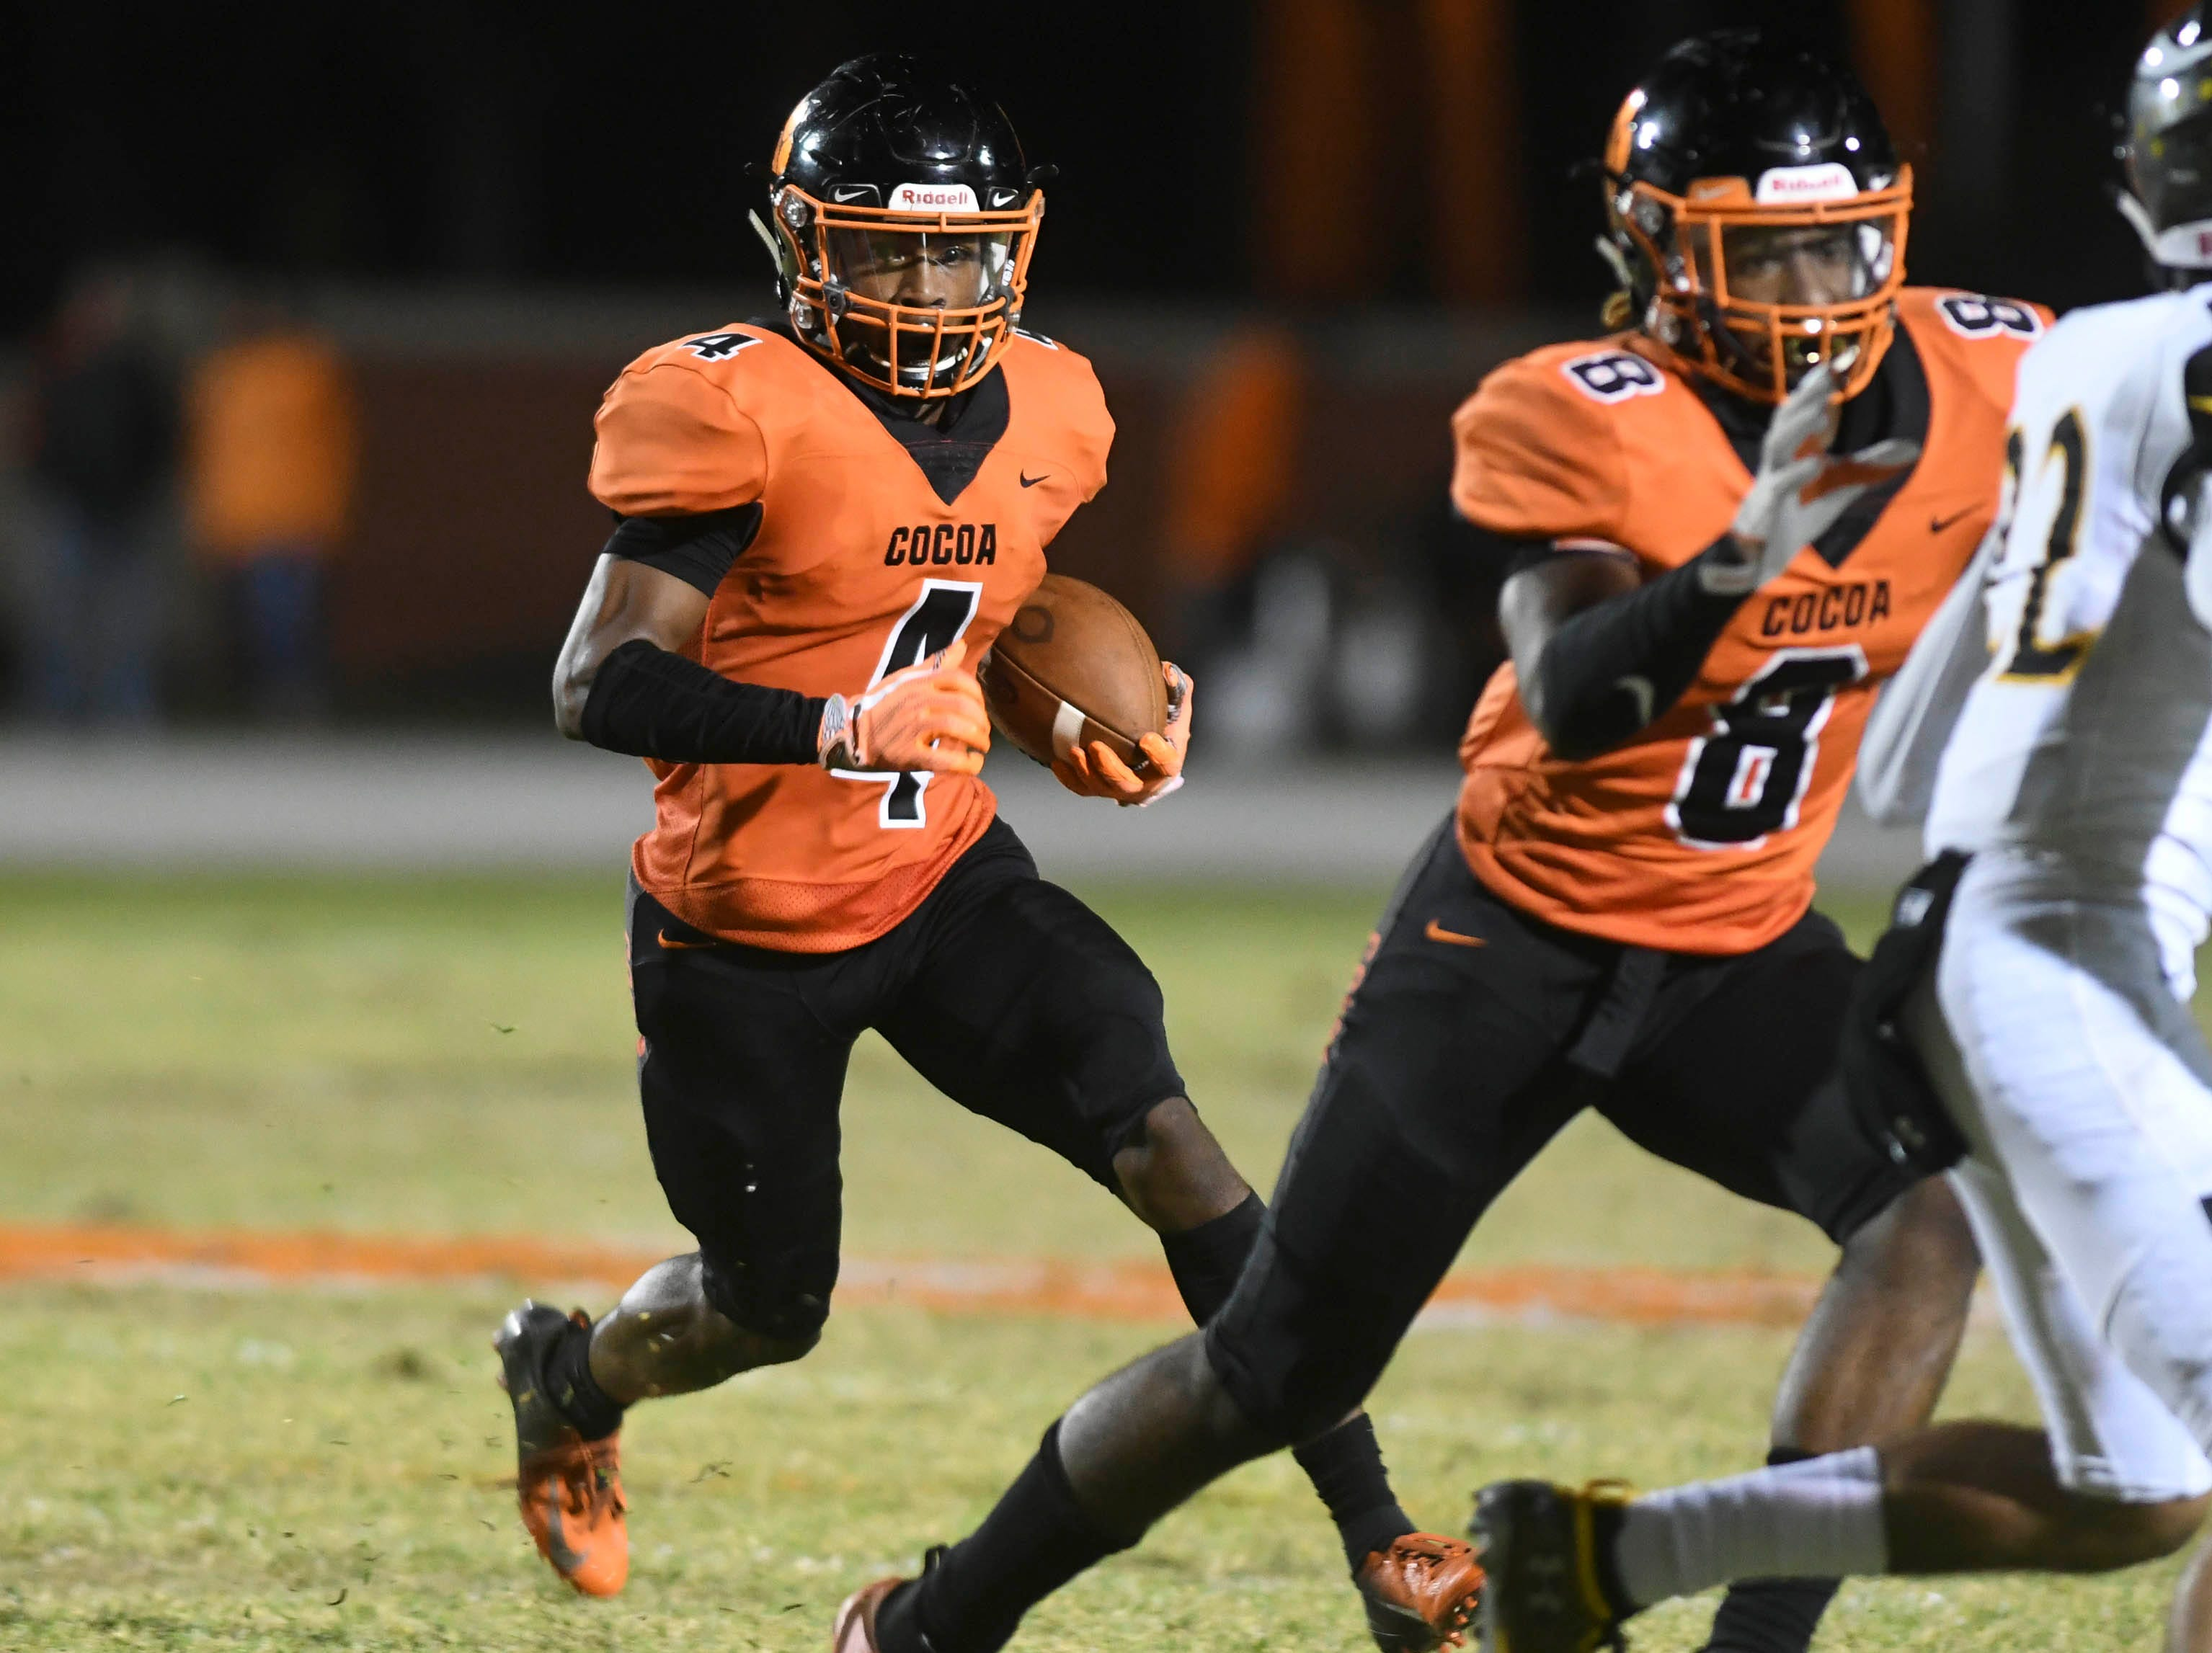 Willie Gaines of Cocoa runs the ball during Friday's game at Blake Stadium.